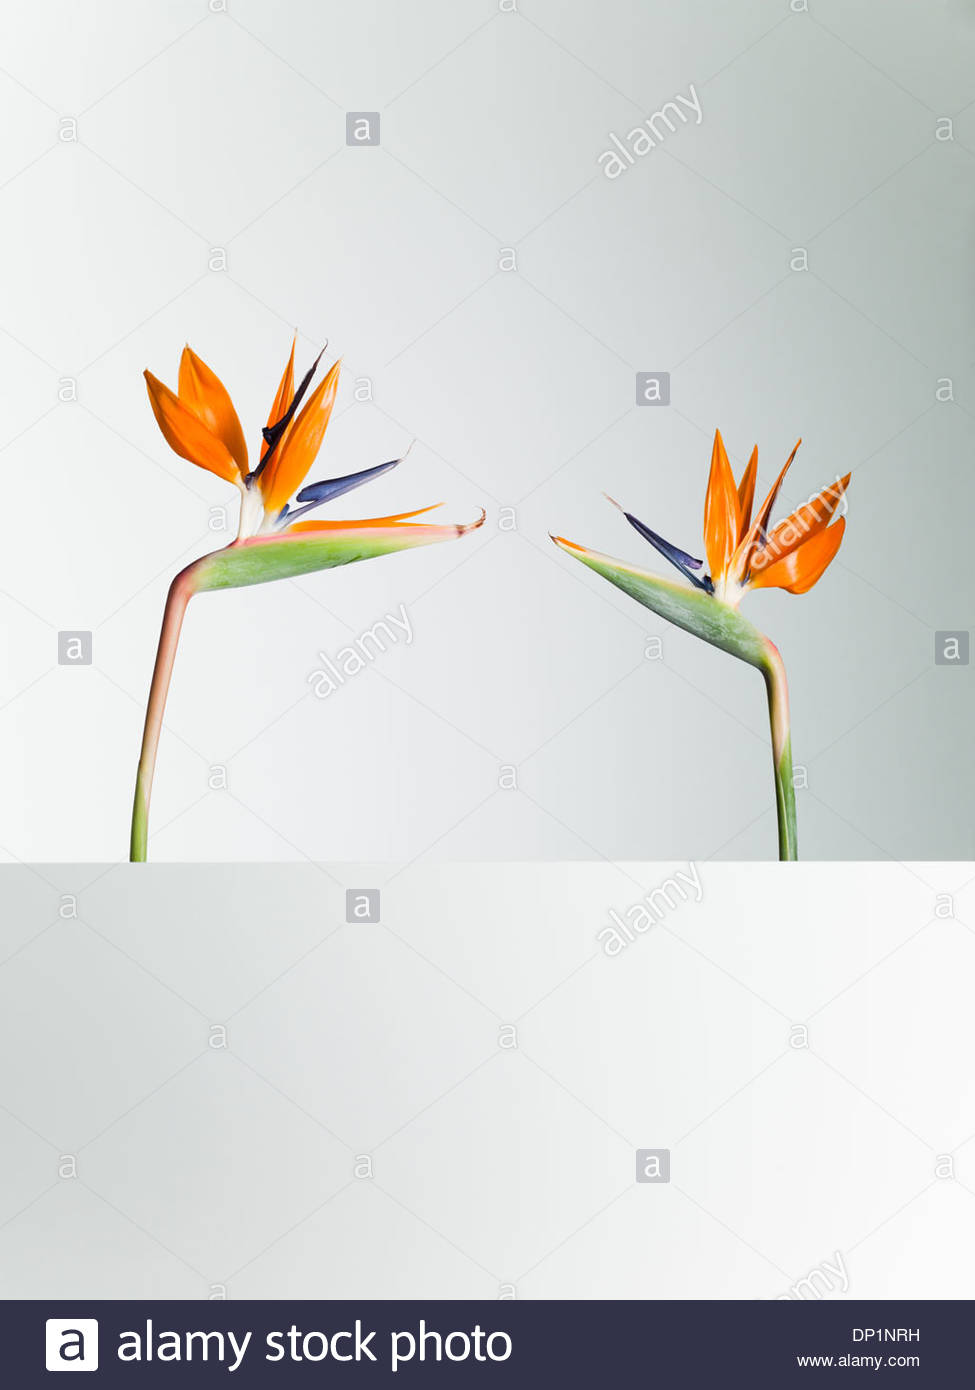 Two bird of paradise flowers face to face - Stock Image